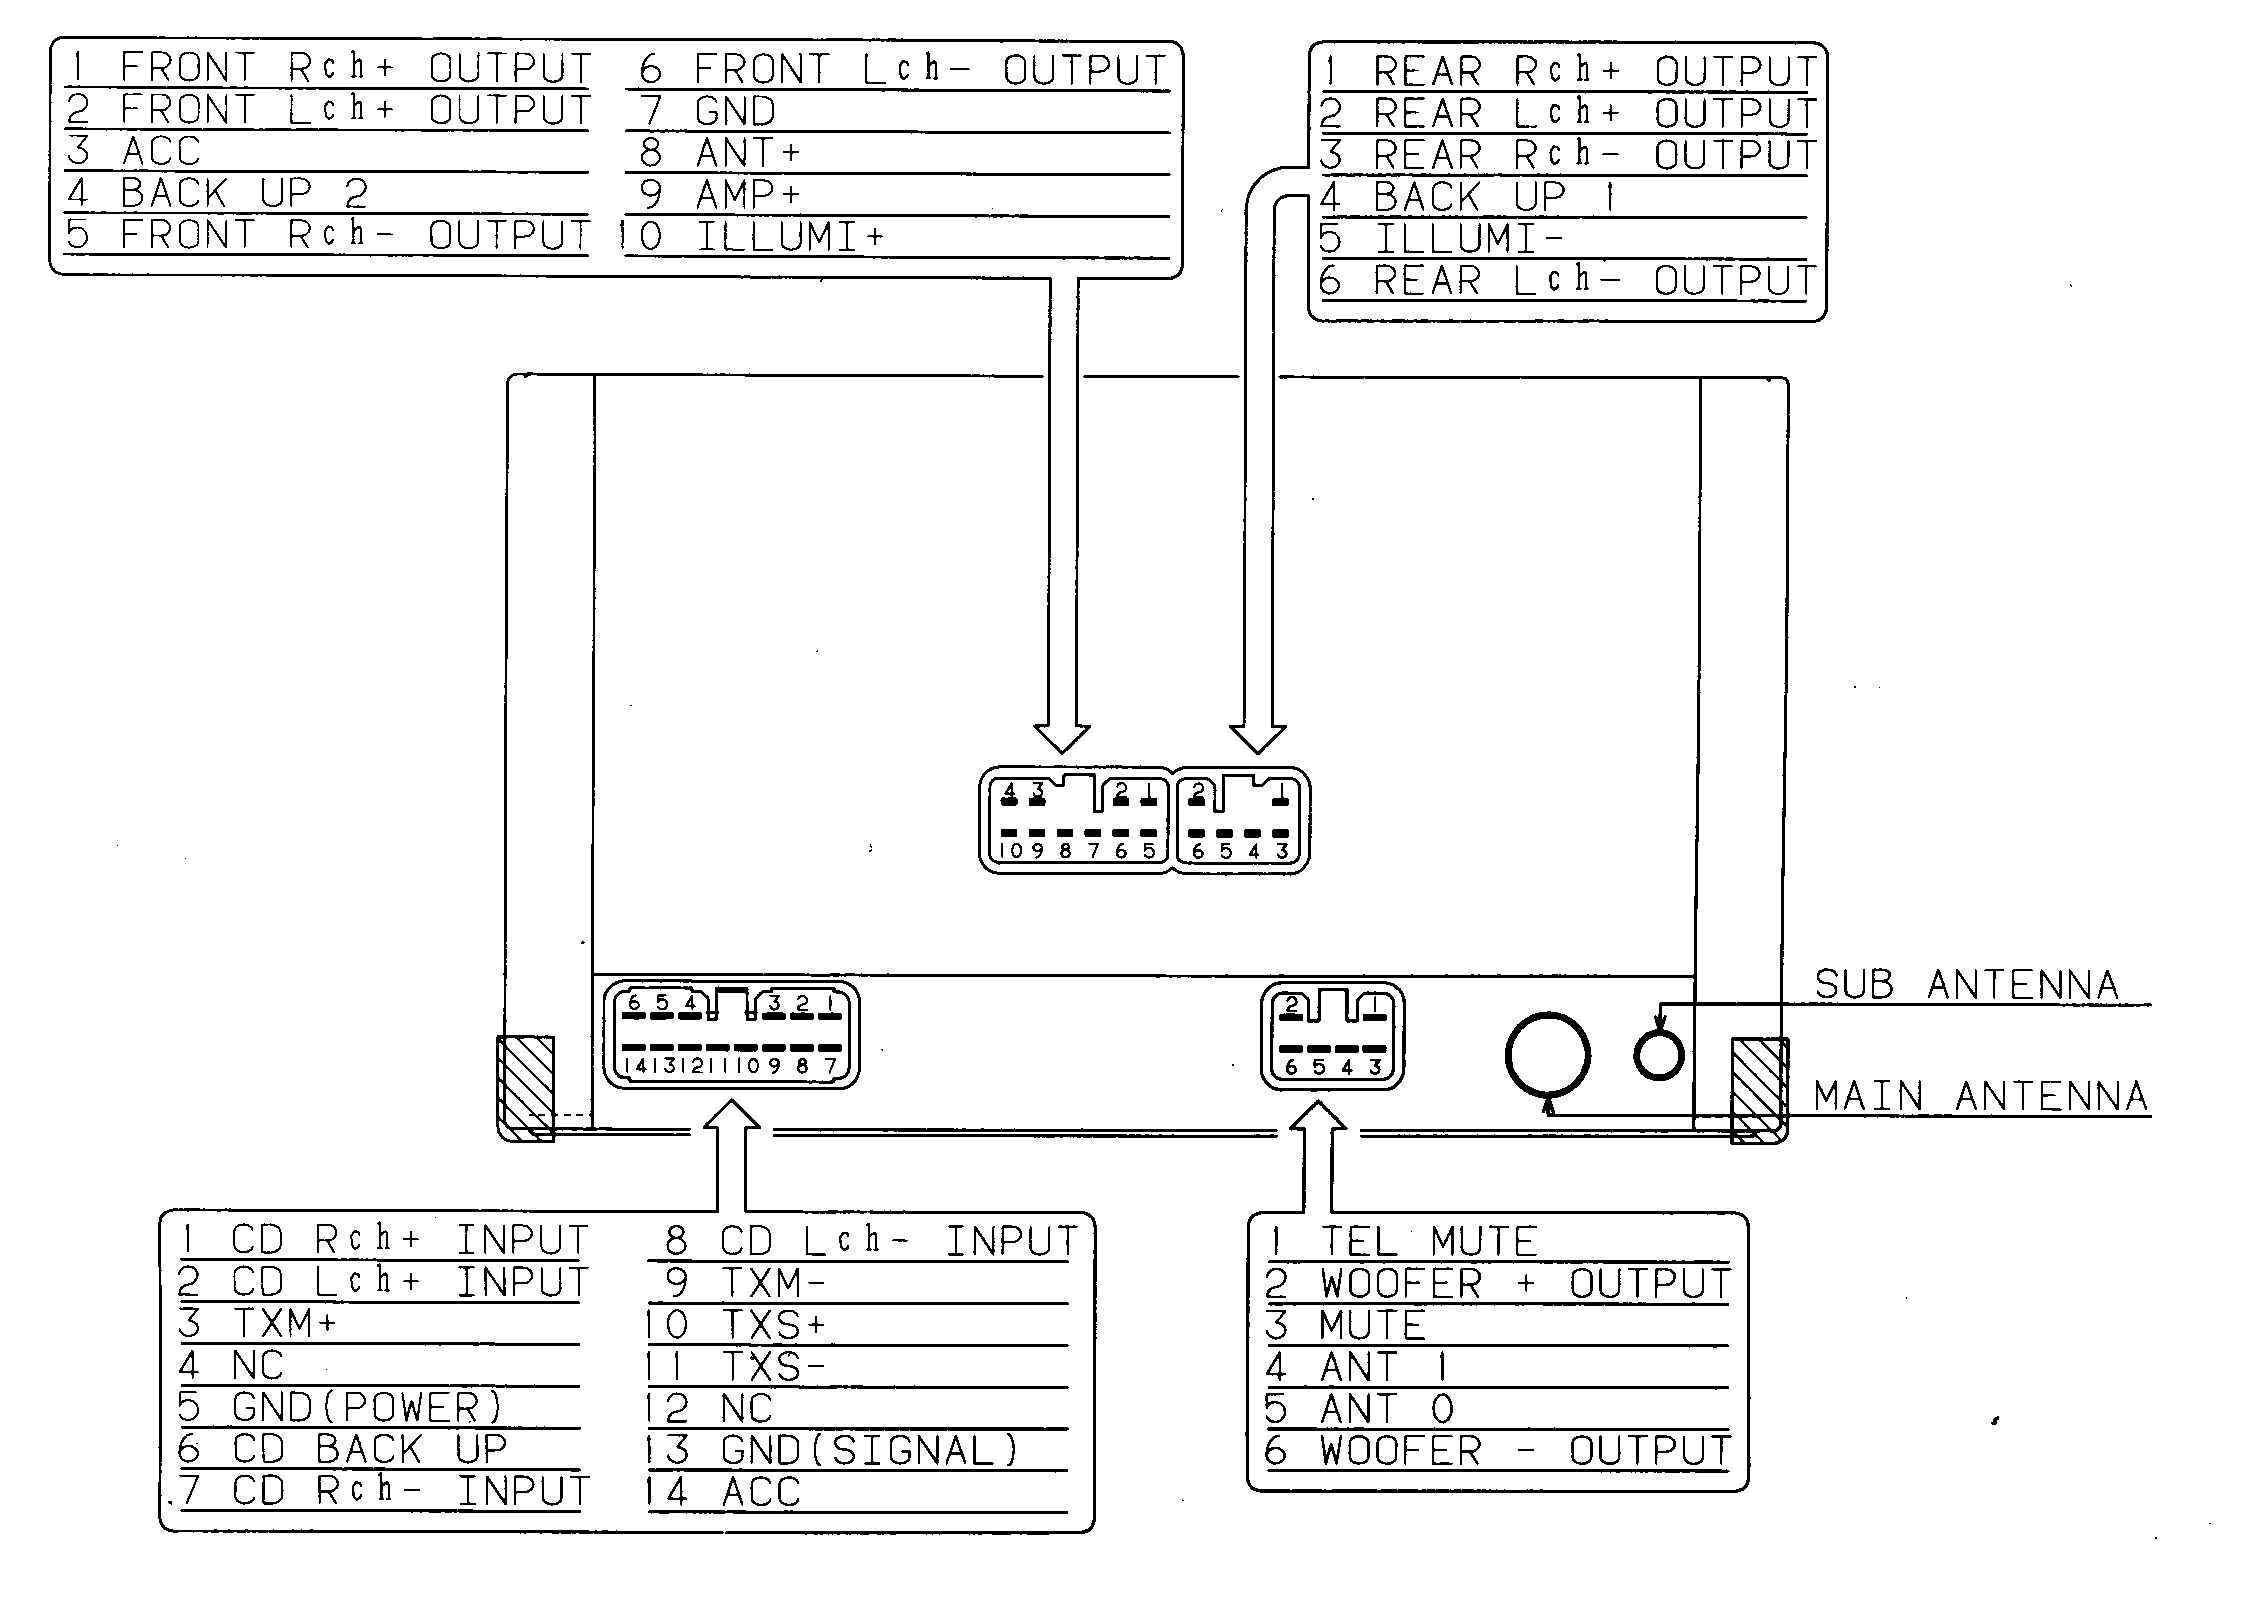 Lexus car stereo wiring diagram harness pinout connector wire 1996 jeep grand cherokee car stereo radio wiring diagram wiring jeep grand cherokee radio wiring diagram at readyjetset.co